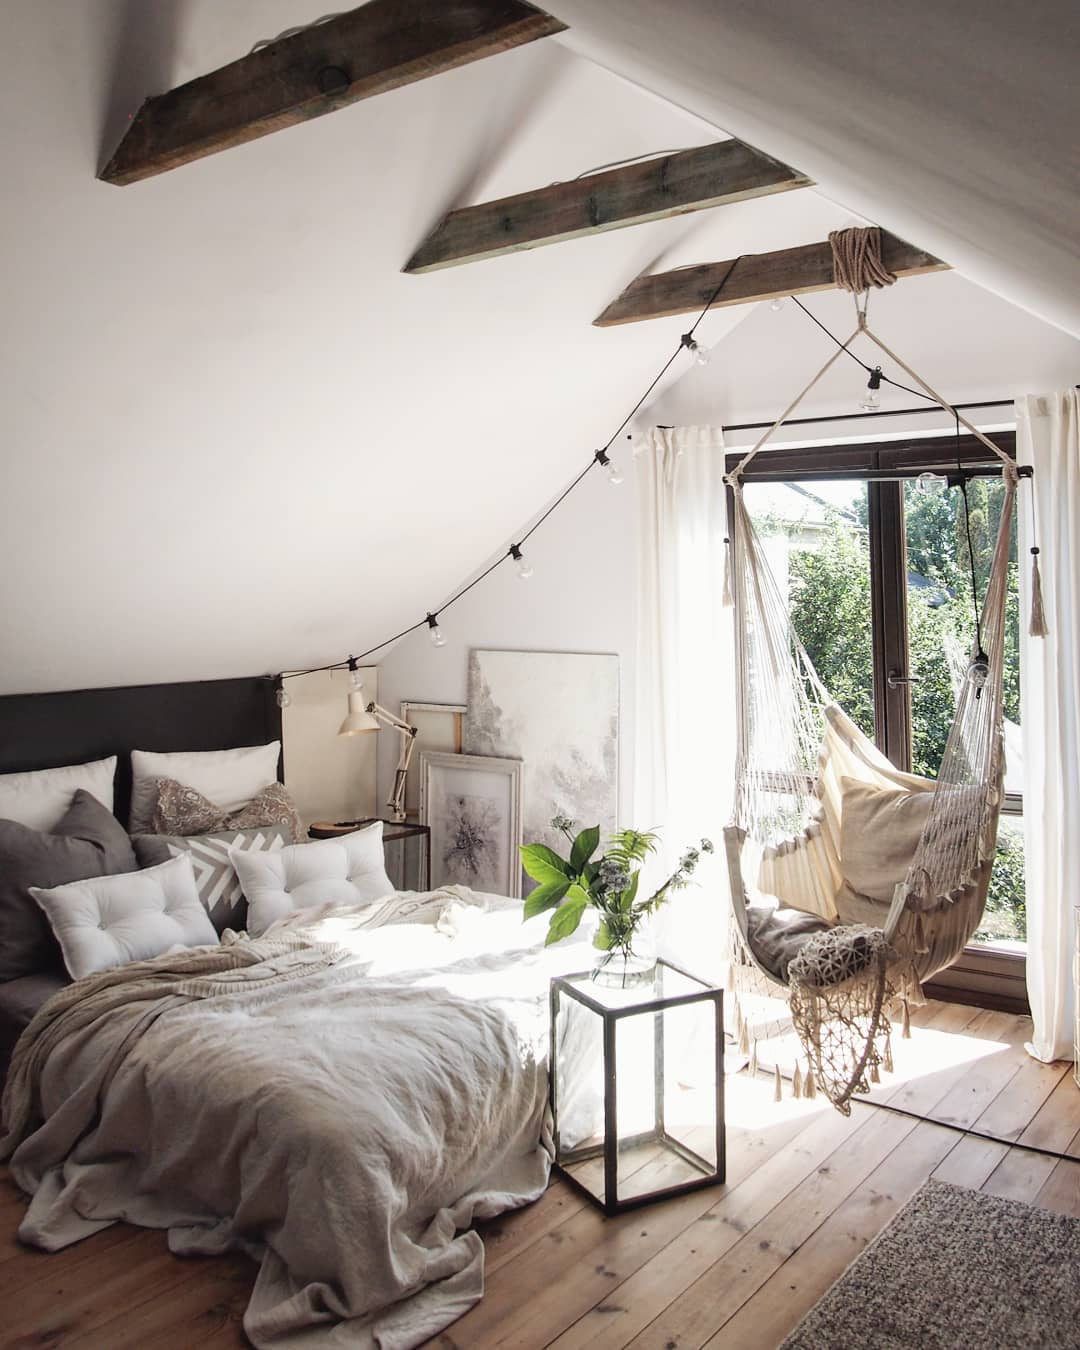 51 Cozy Bedrooms With How-To Tips & Inspiration